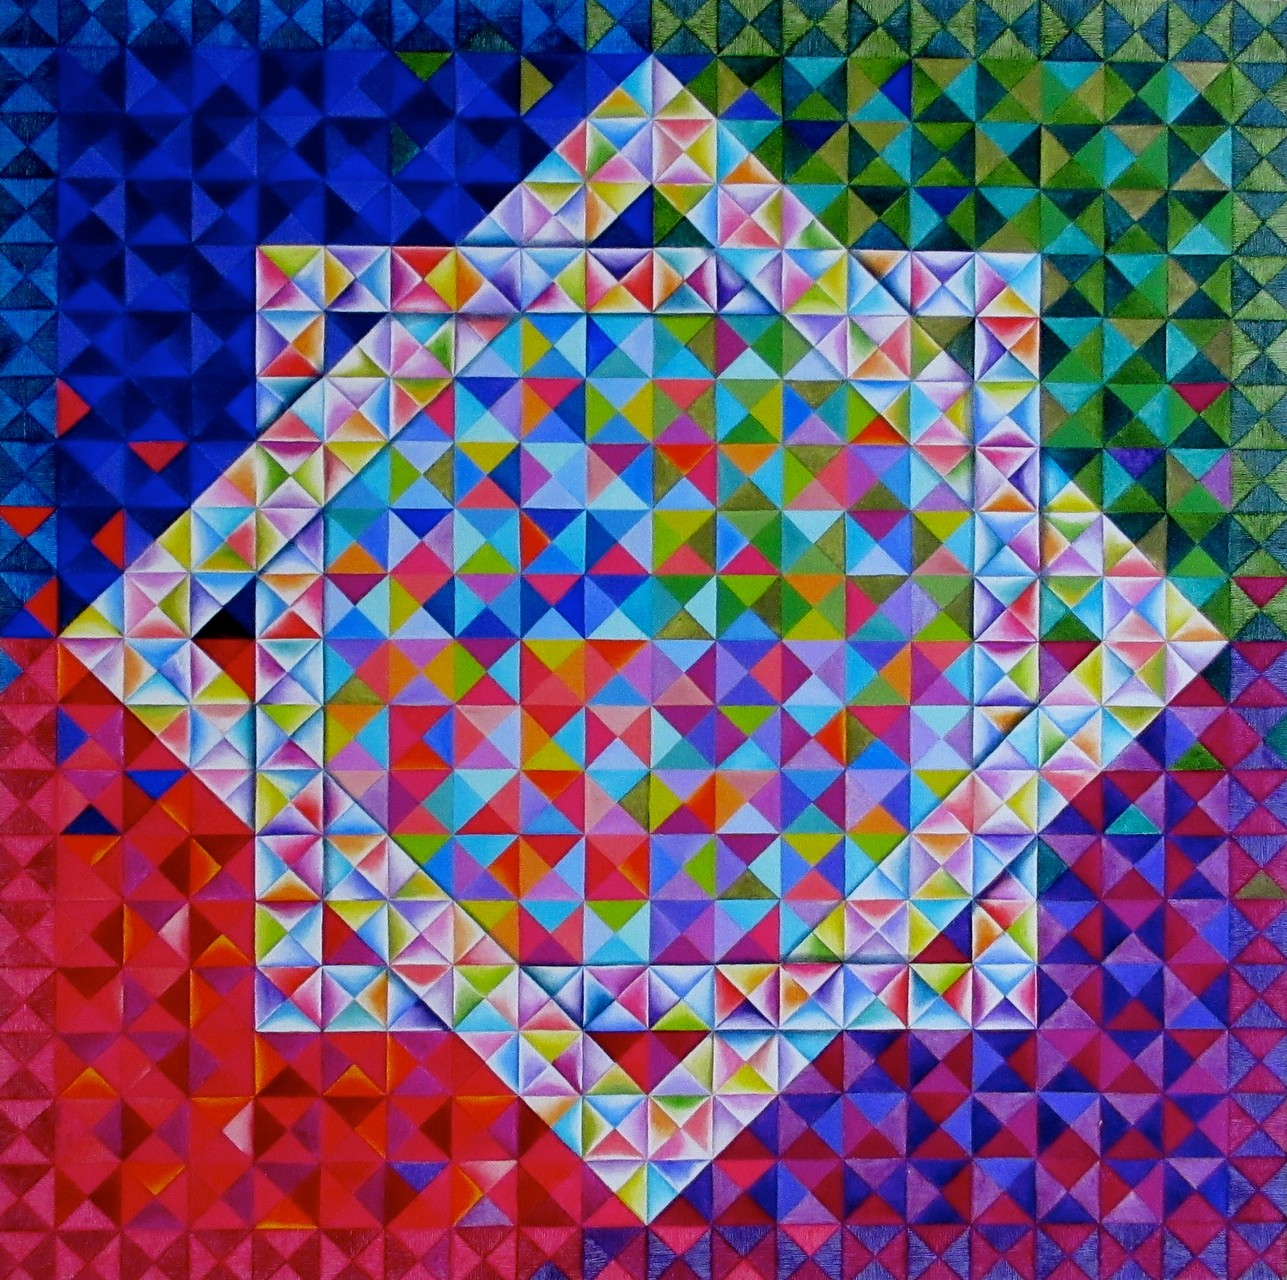 """Kaleidoscope II"" (Square Affair Series VII), oil on canvas, 30x30, 2012"